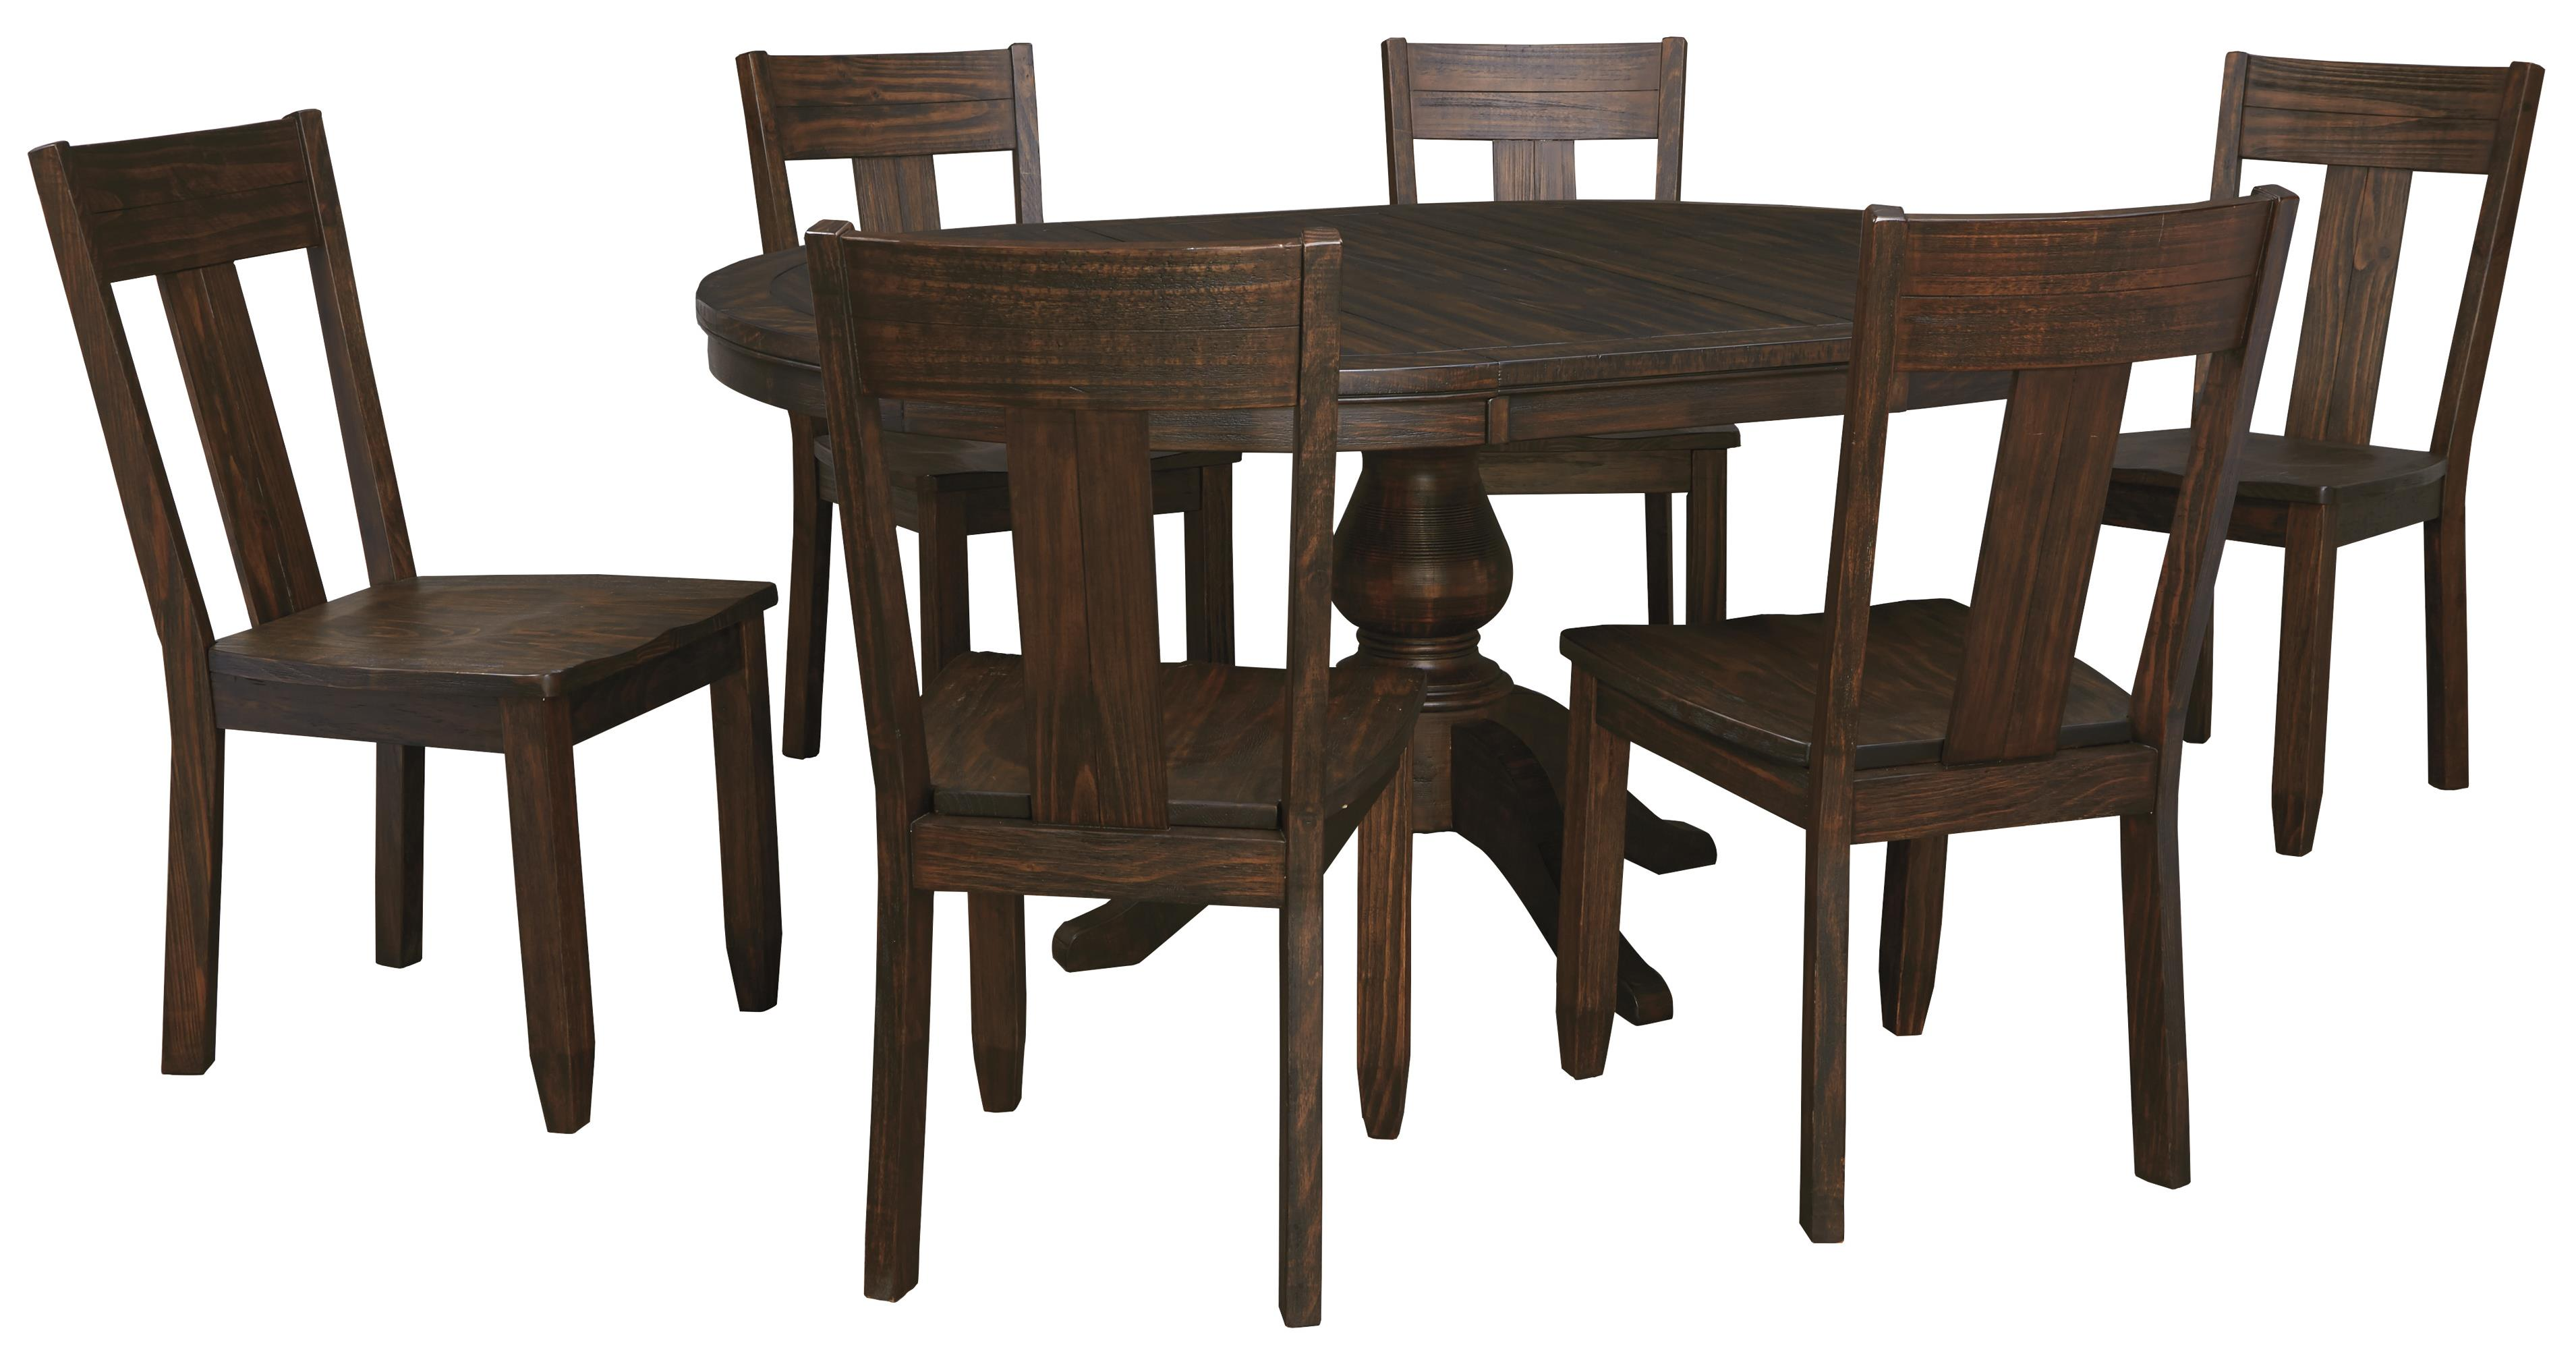 7 piece oval dining table set with wood seat side chairs for Dining room table with bench